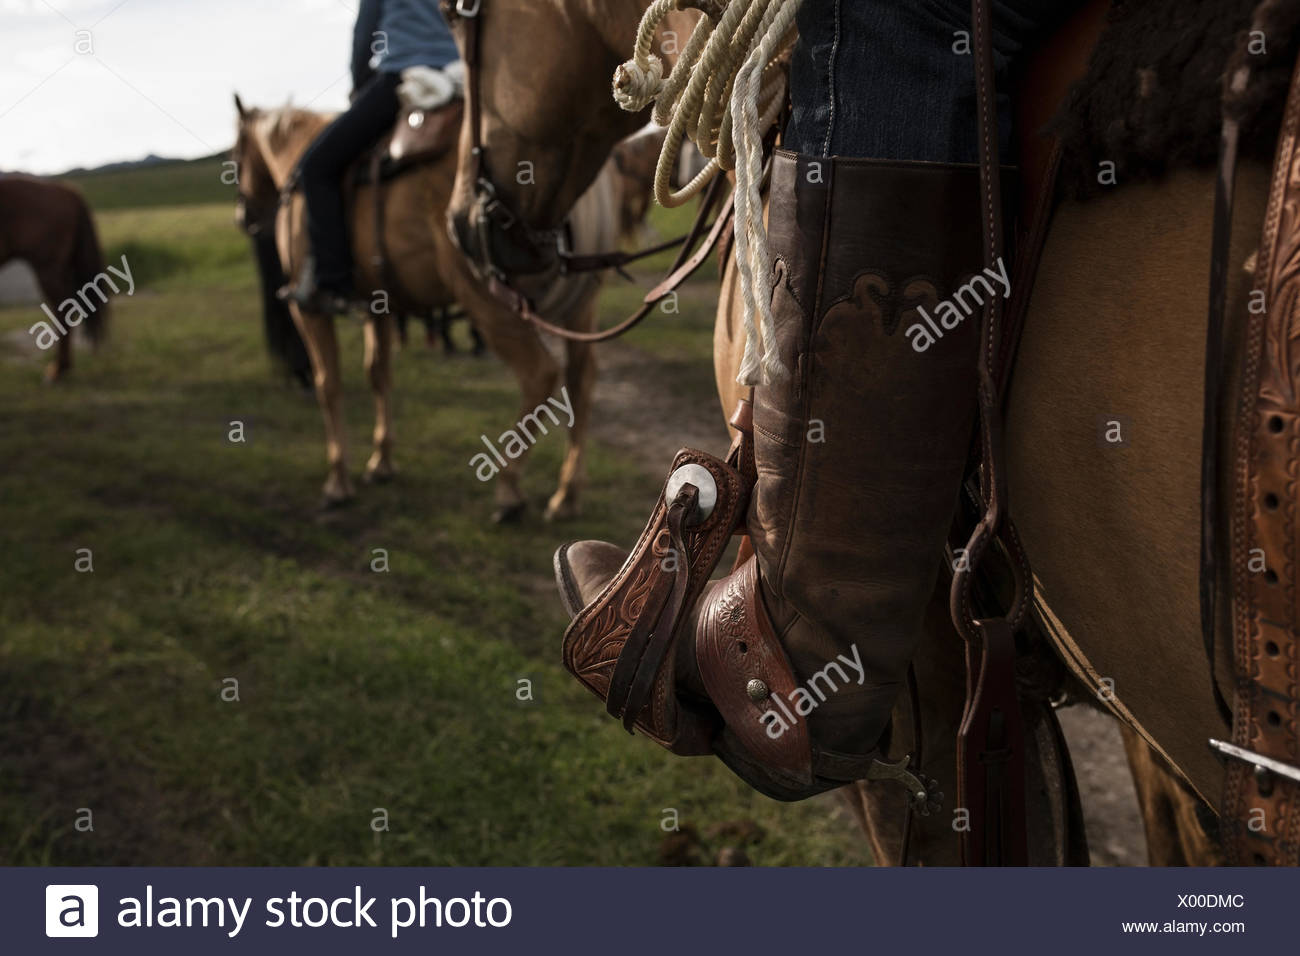 Close up of womans cowboy boot in stirrup, riding horse. - Stock Image